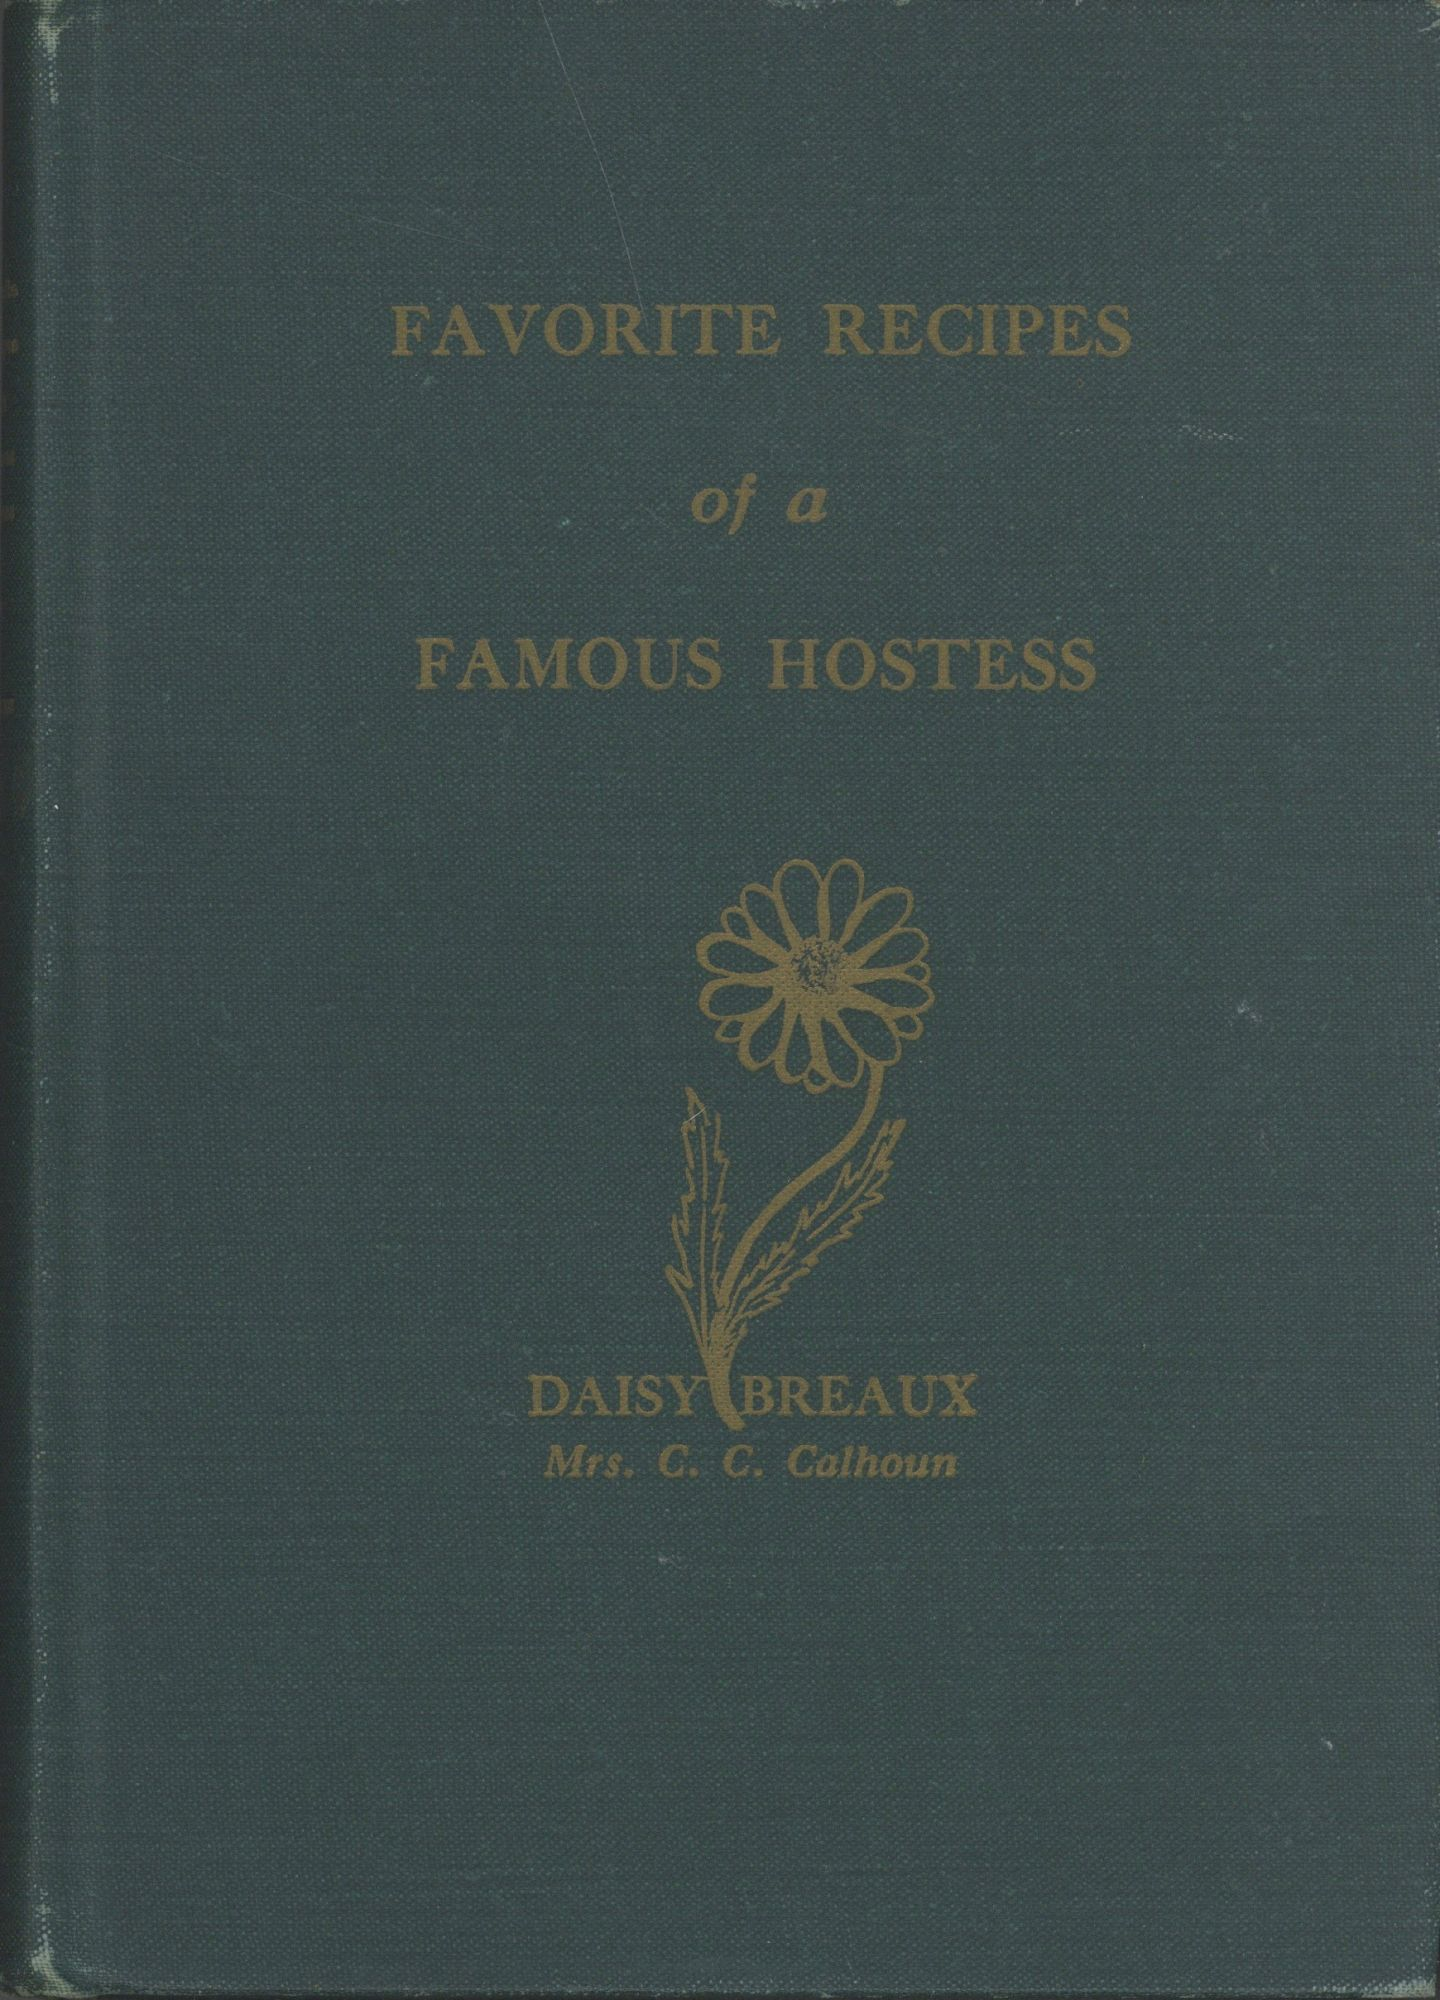 Favorite Recipes of a Famous Hostess. By Daisy Breaux (Mrs. C. C. Calhoun). Daisy Breaux, Mrs. C. C. Calhoun.